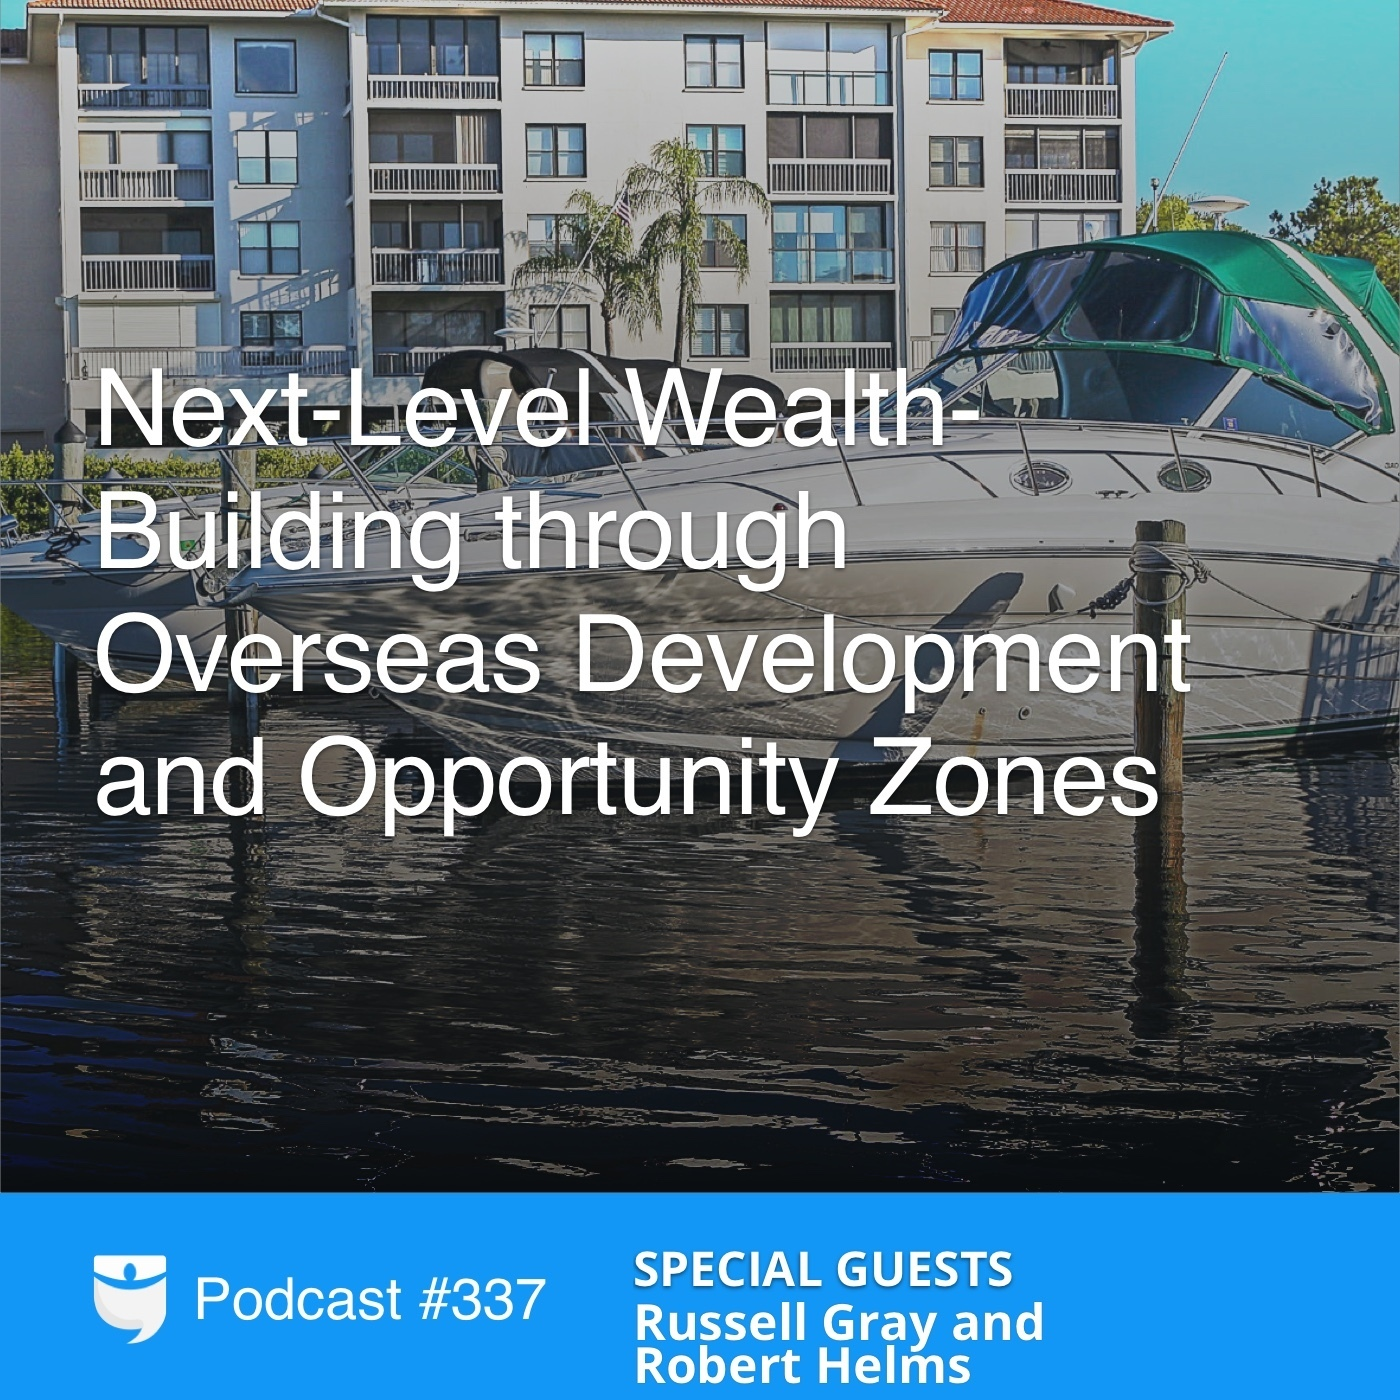 #337: Next Level Wealth-Building Through Overseas Development and Opportunity Zones with Russell Gray and Robert Helms